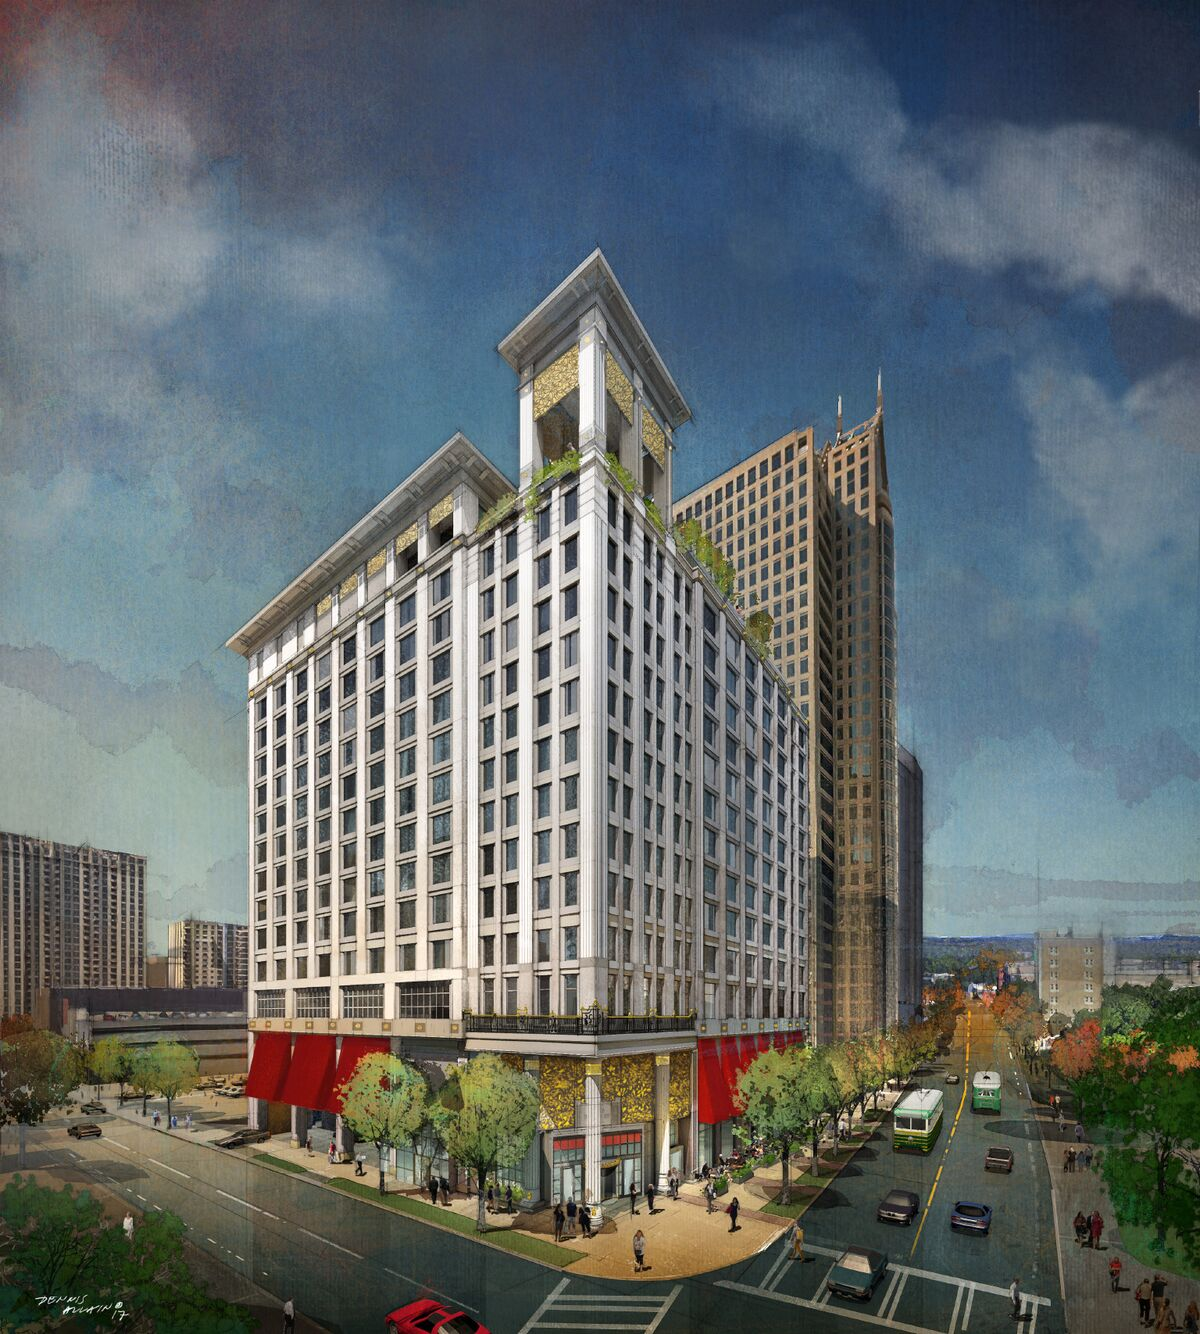 Grand bohemian hotel 15 floors 254 rooms boutique for Charlotte nc boutique hotels